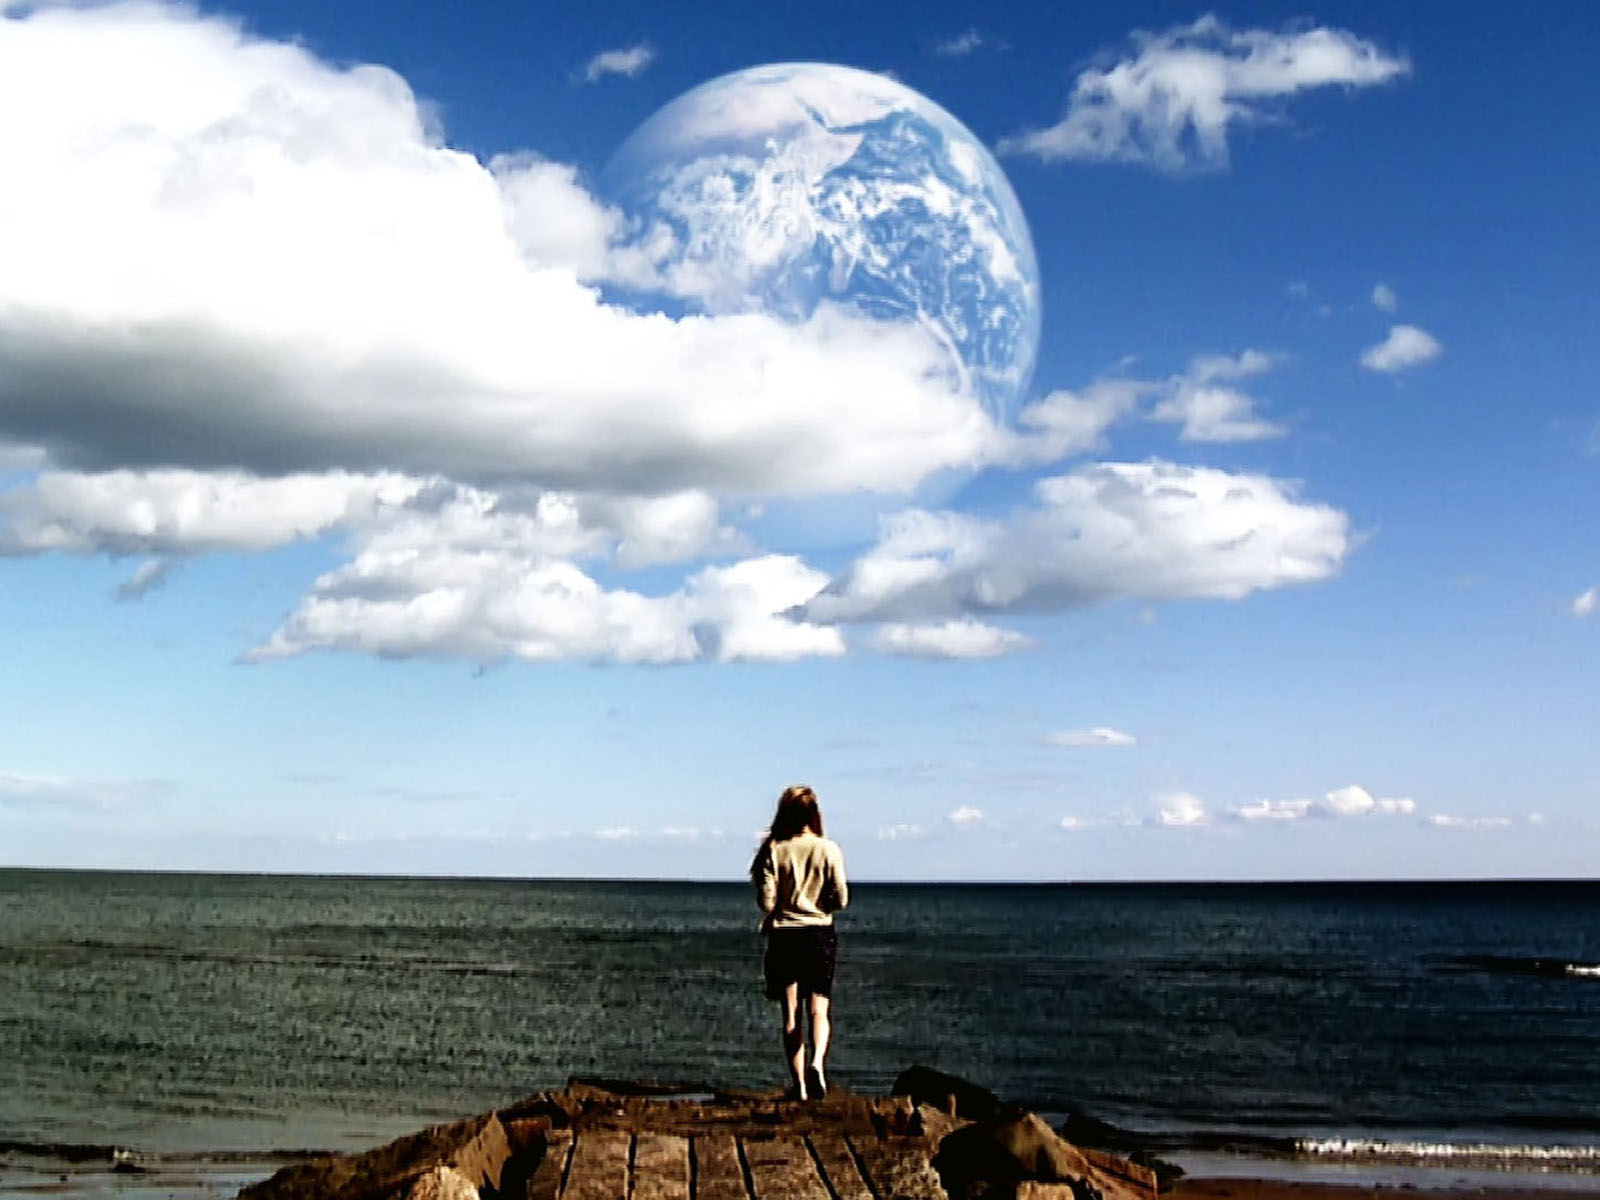 Another Earth Wallpaper wallpapers Another Earth Wallpaper stock